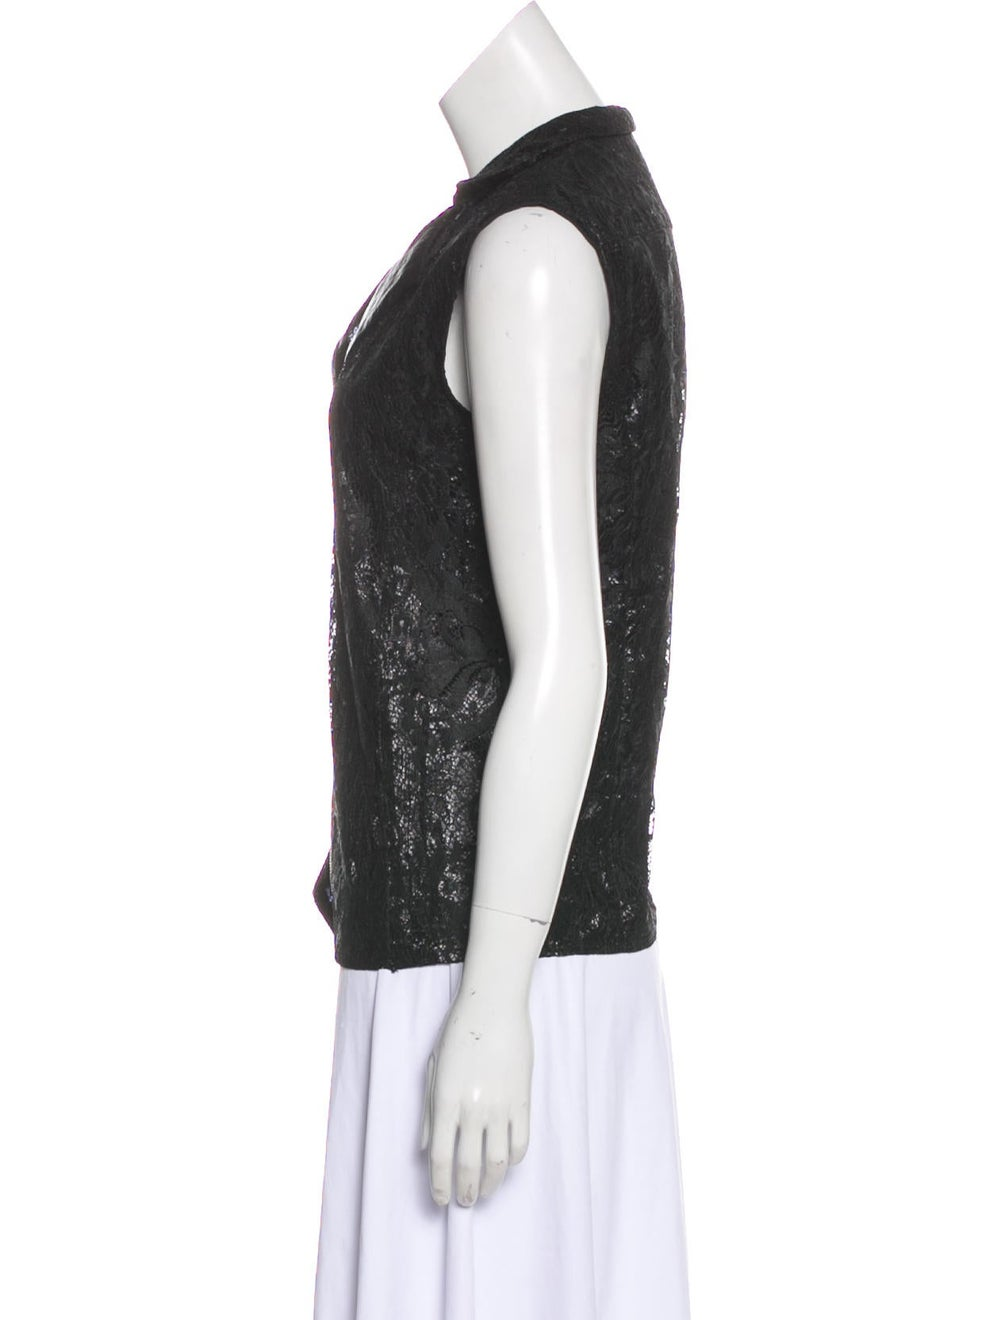 Balenciaga Lace Sleeveless Top Black - image 2